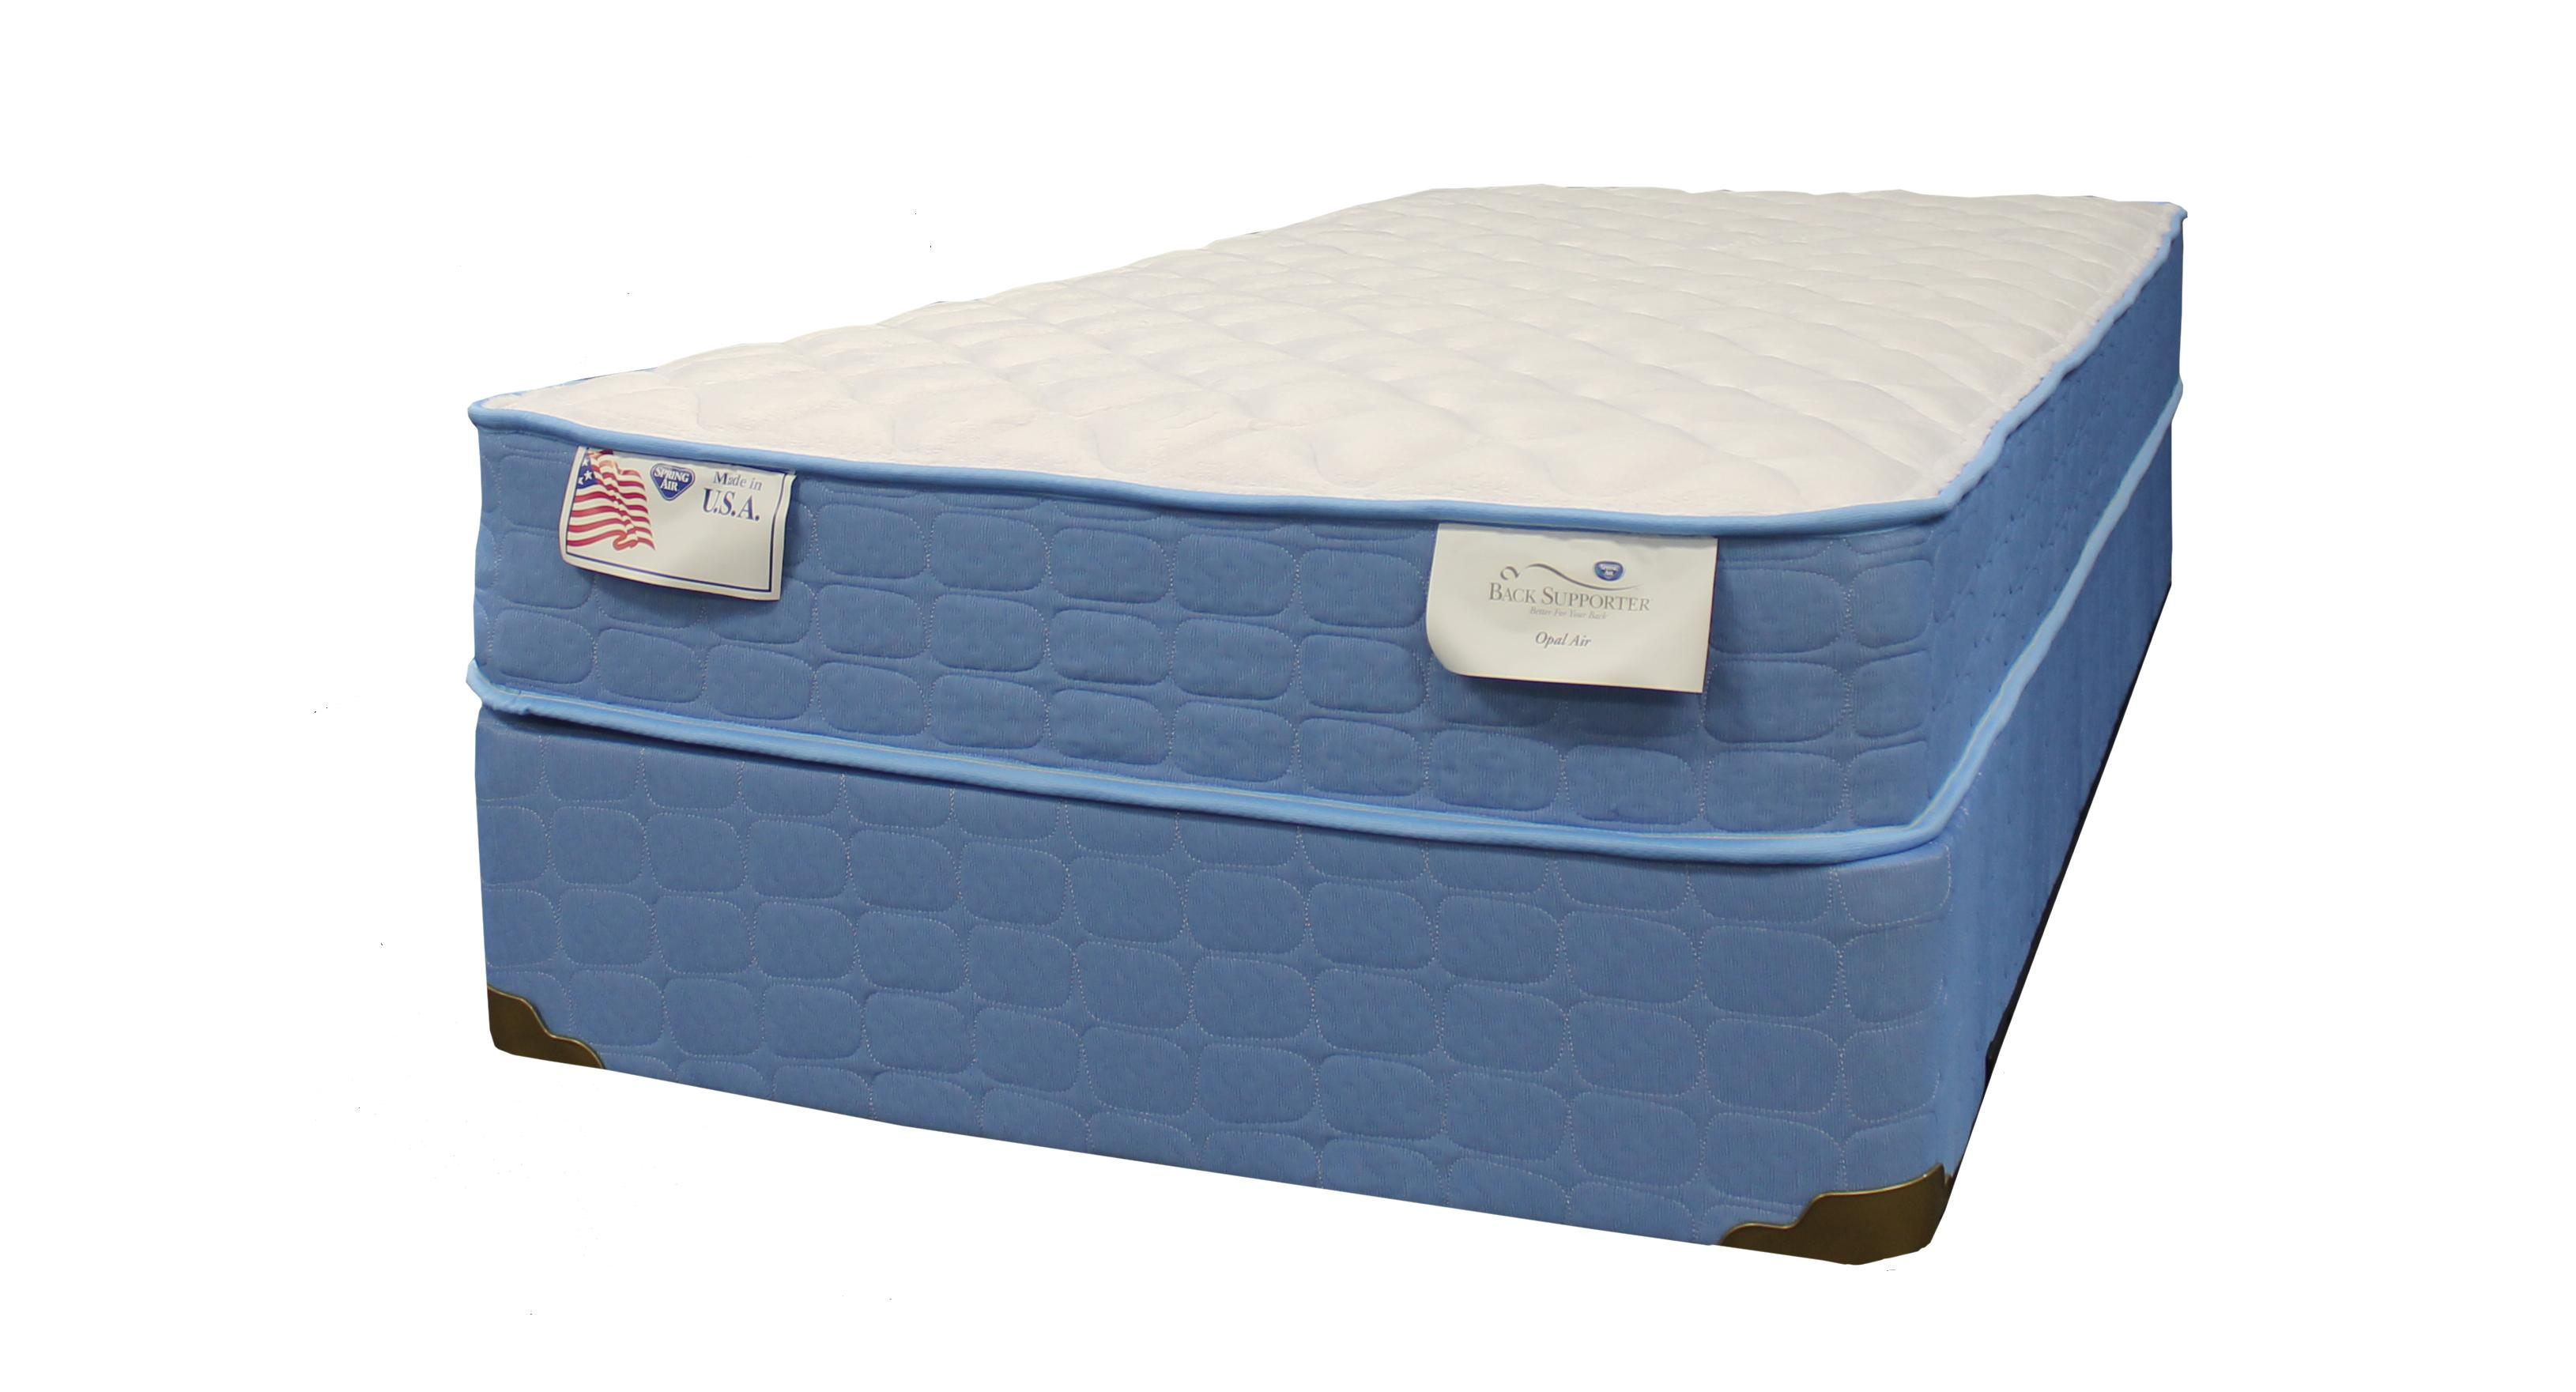 memory overstock garden beautyrest free pedic mattress from inch your home queen gel foam choose comforpedic today size comfort comforter product shipping